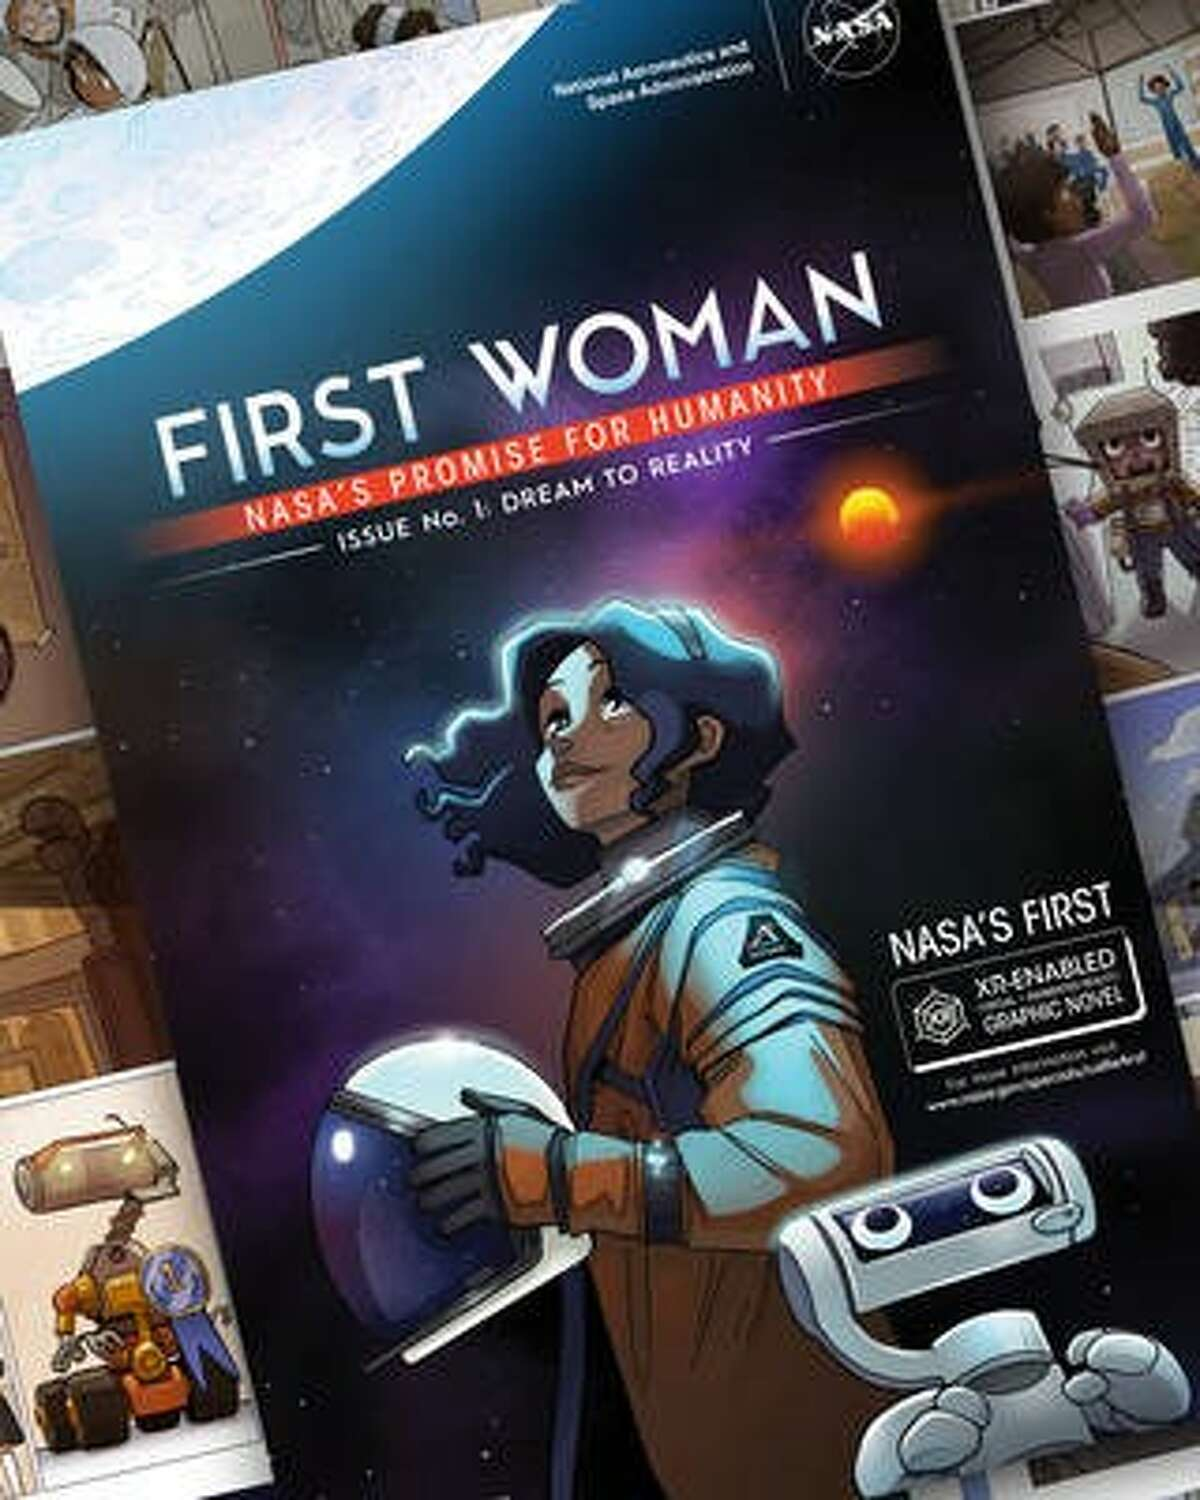 """NASA has created a graphic novel around fictional character Callie Rodriguez.Issue 1, """"Dream to Reality,"""" imagines Callie's trailblazing path as the first woman on the Moon."""